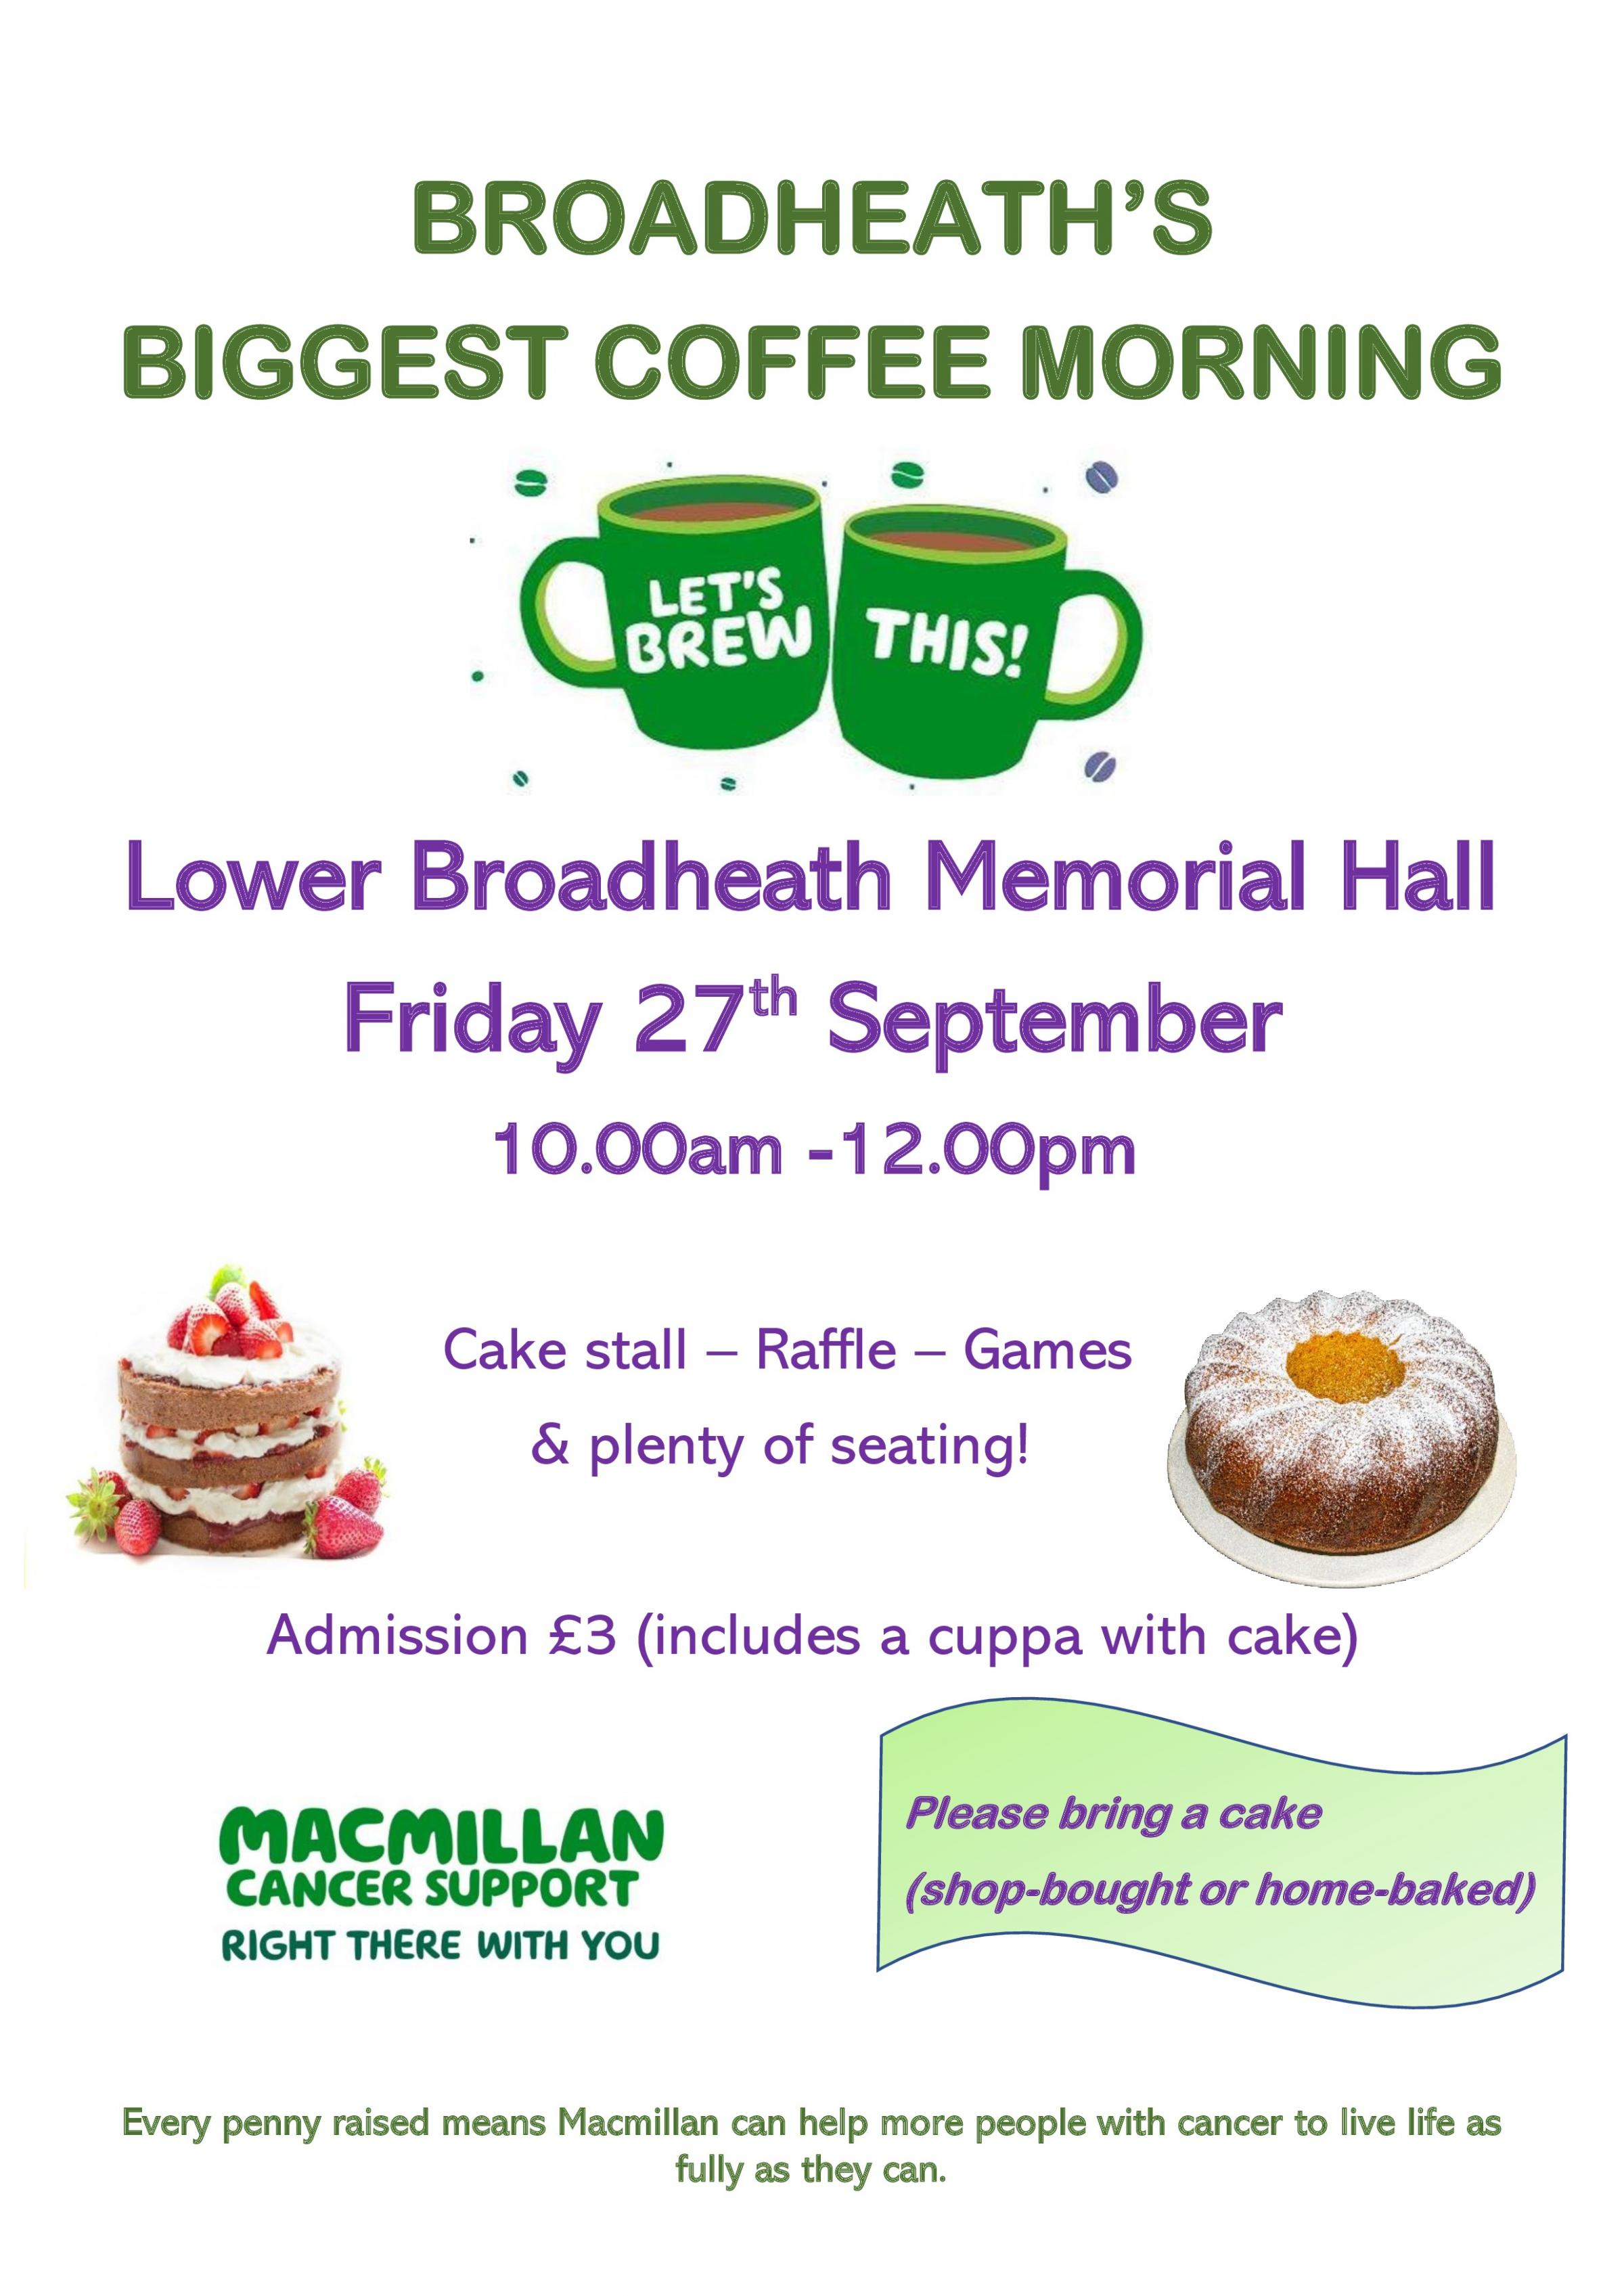 Broadheath's Biggest Coffee Morning